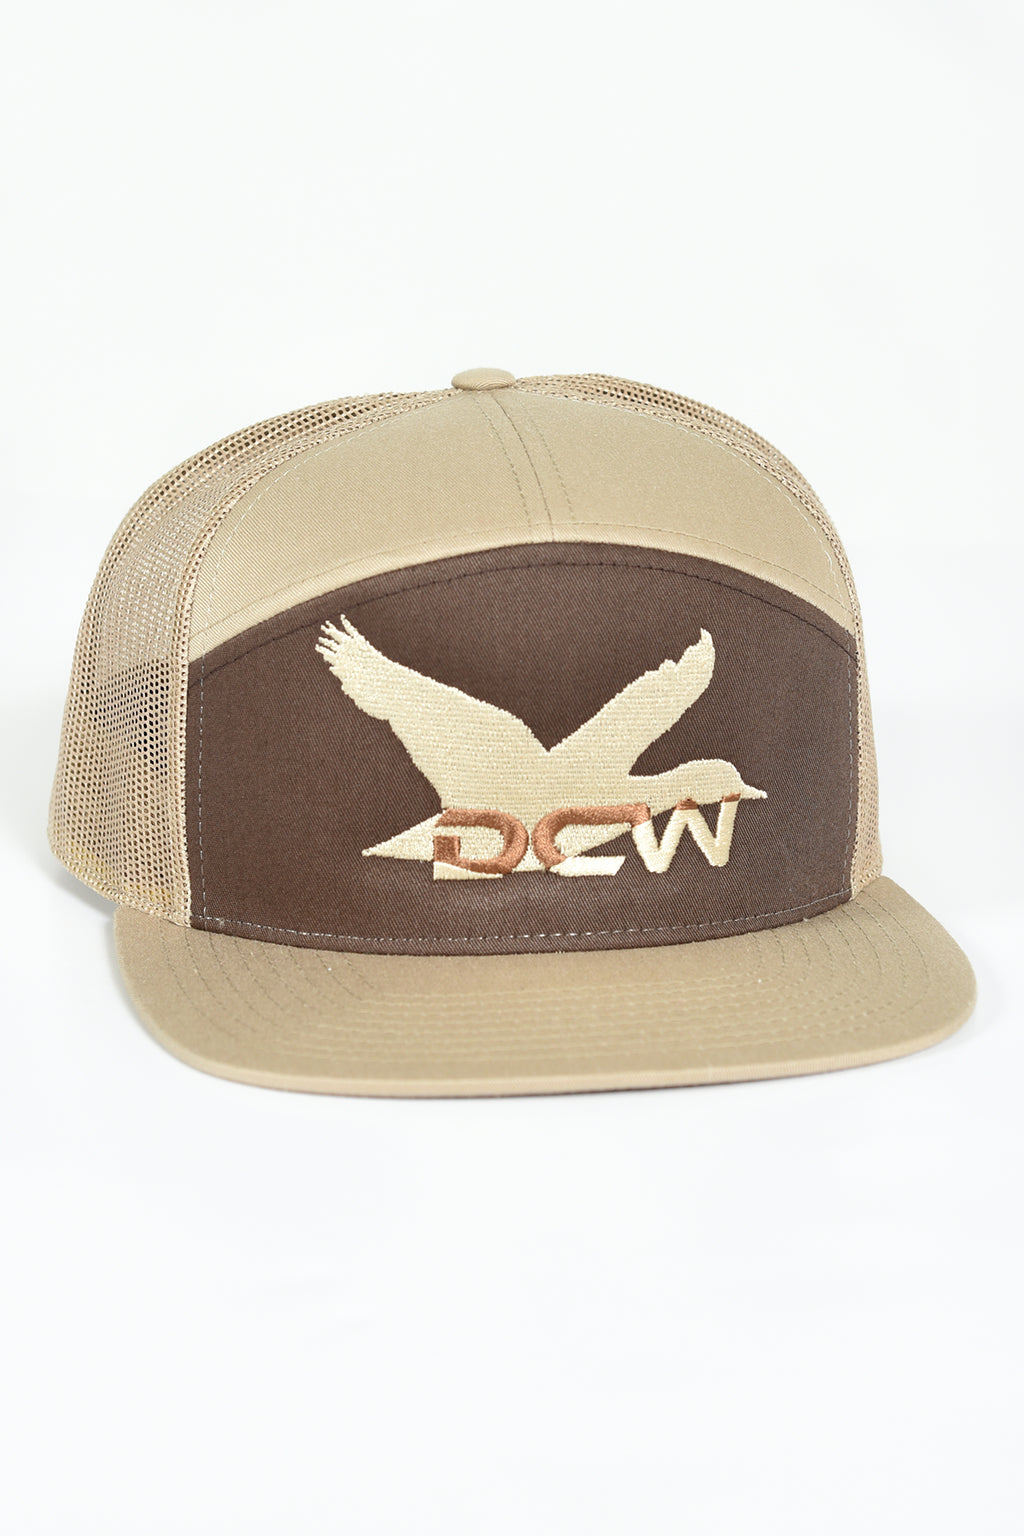 Dixie Creek Mallard - 7 Panel Trucker Hat - BROWN/KHAKI